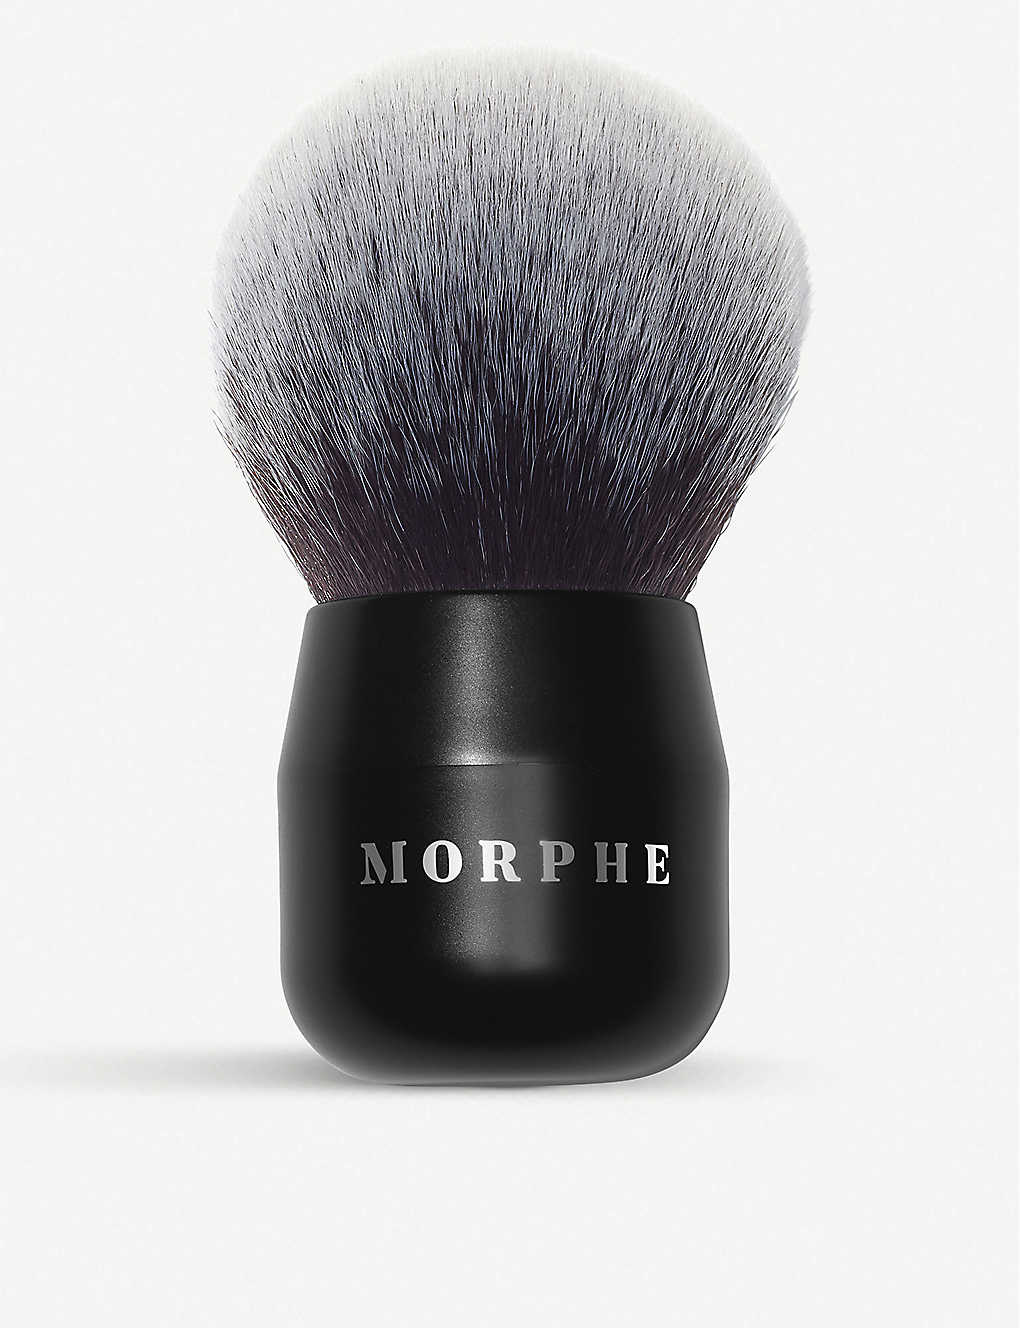 MORPHE: Glamabronze Deluxe Face & Body Brush